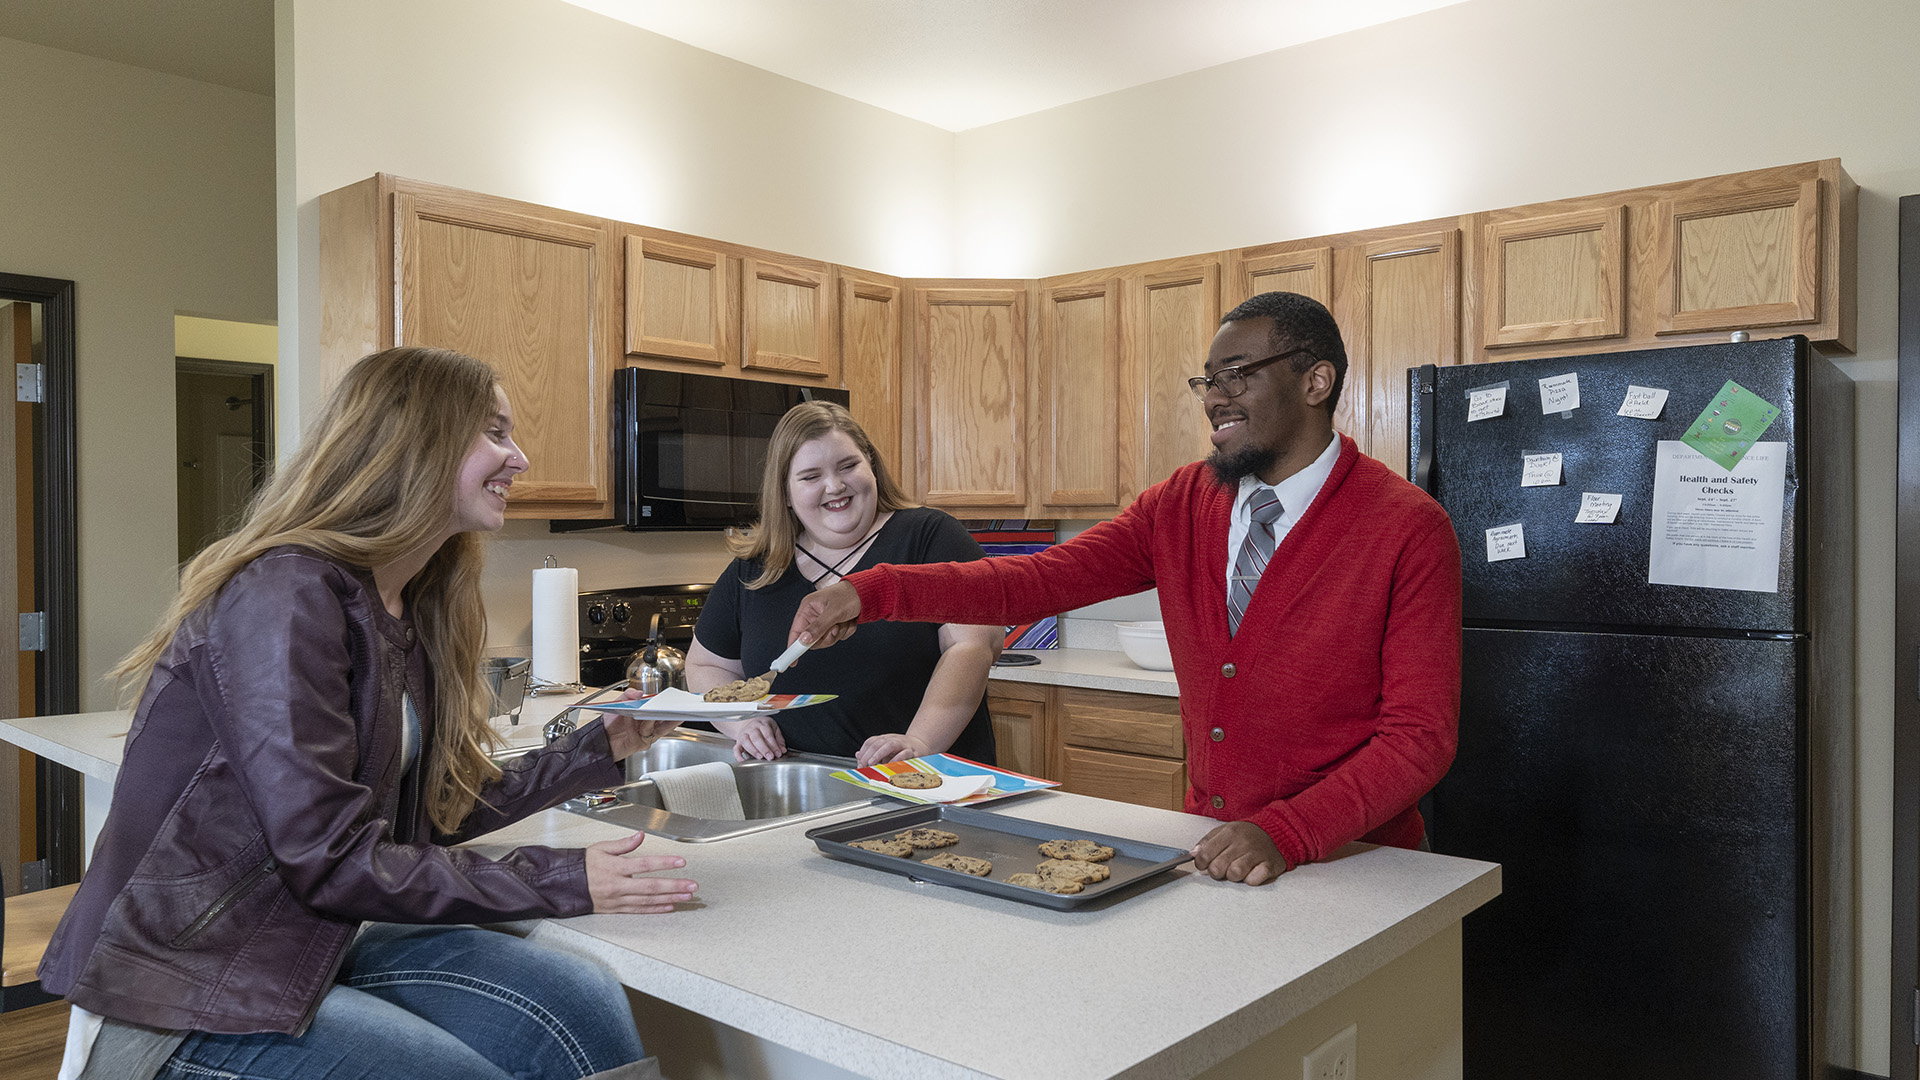 Students making cookies in their dorm room kitchen